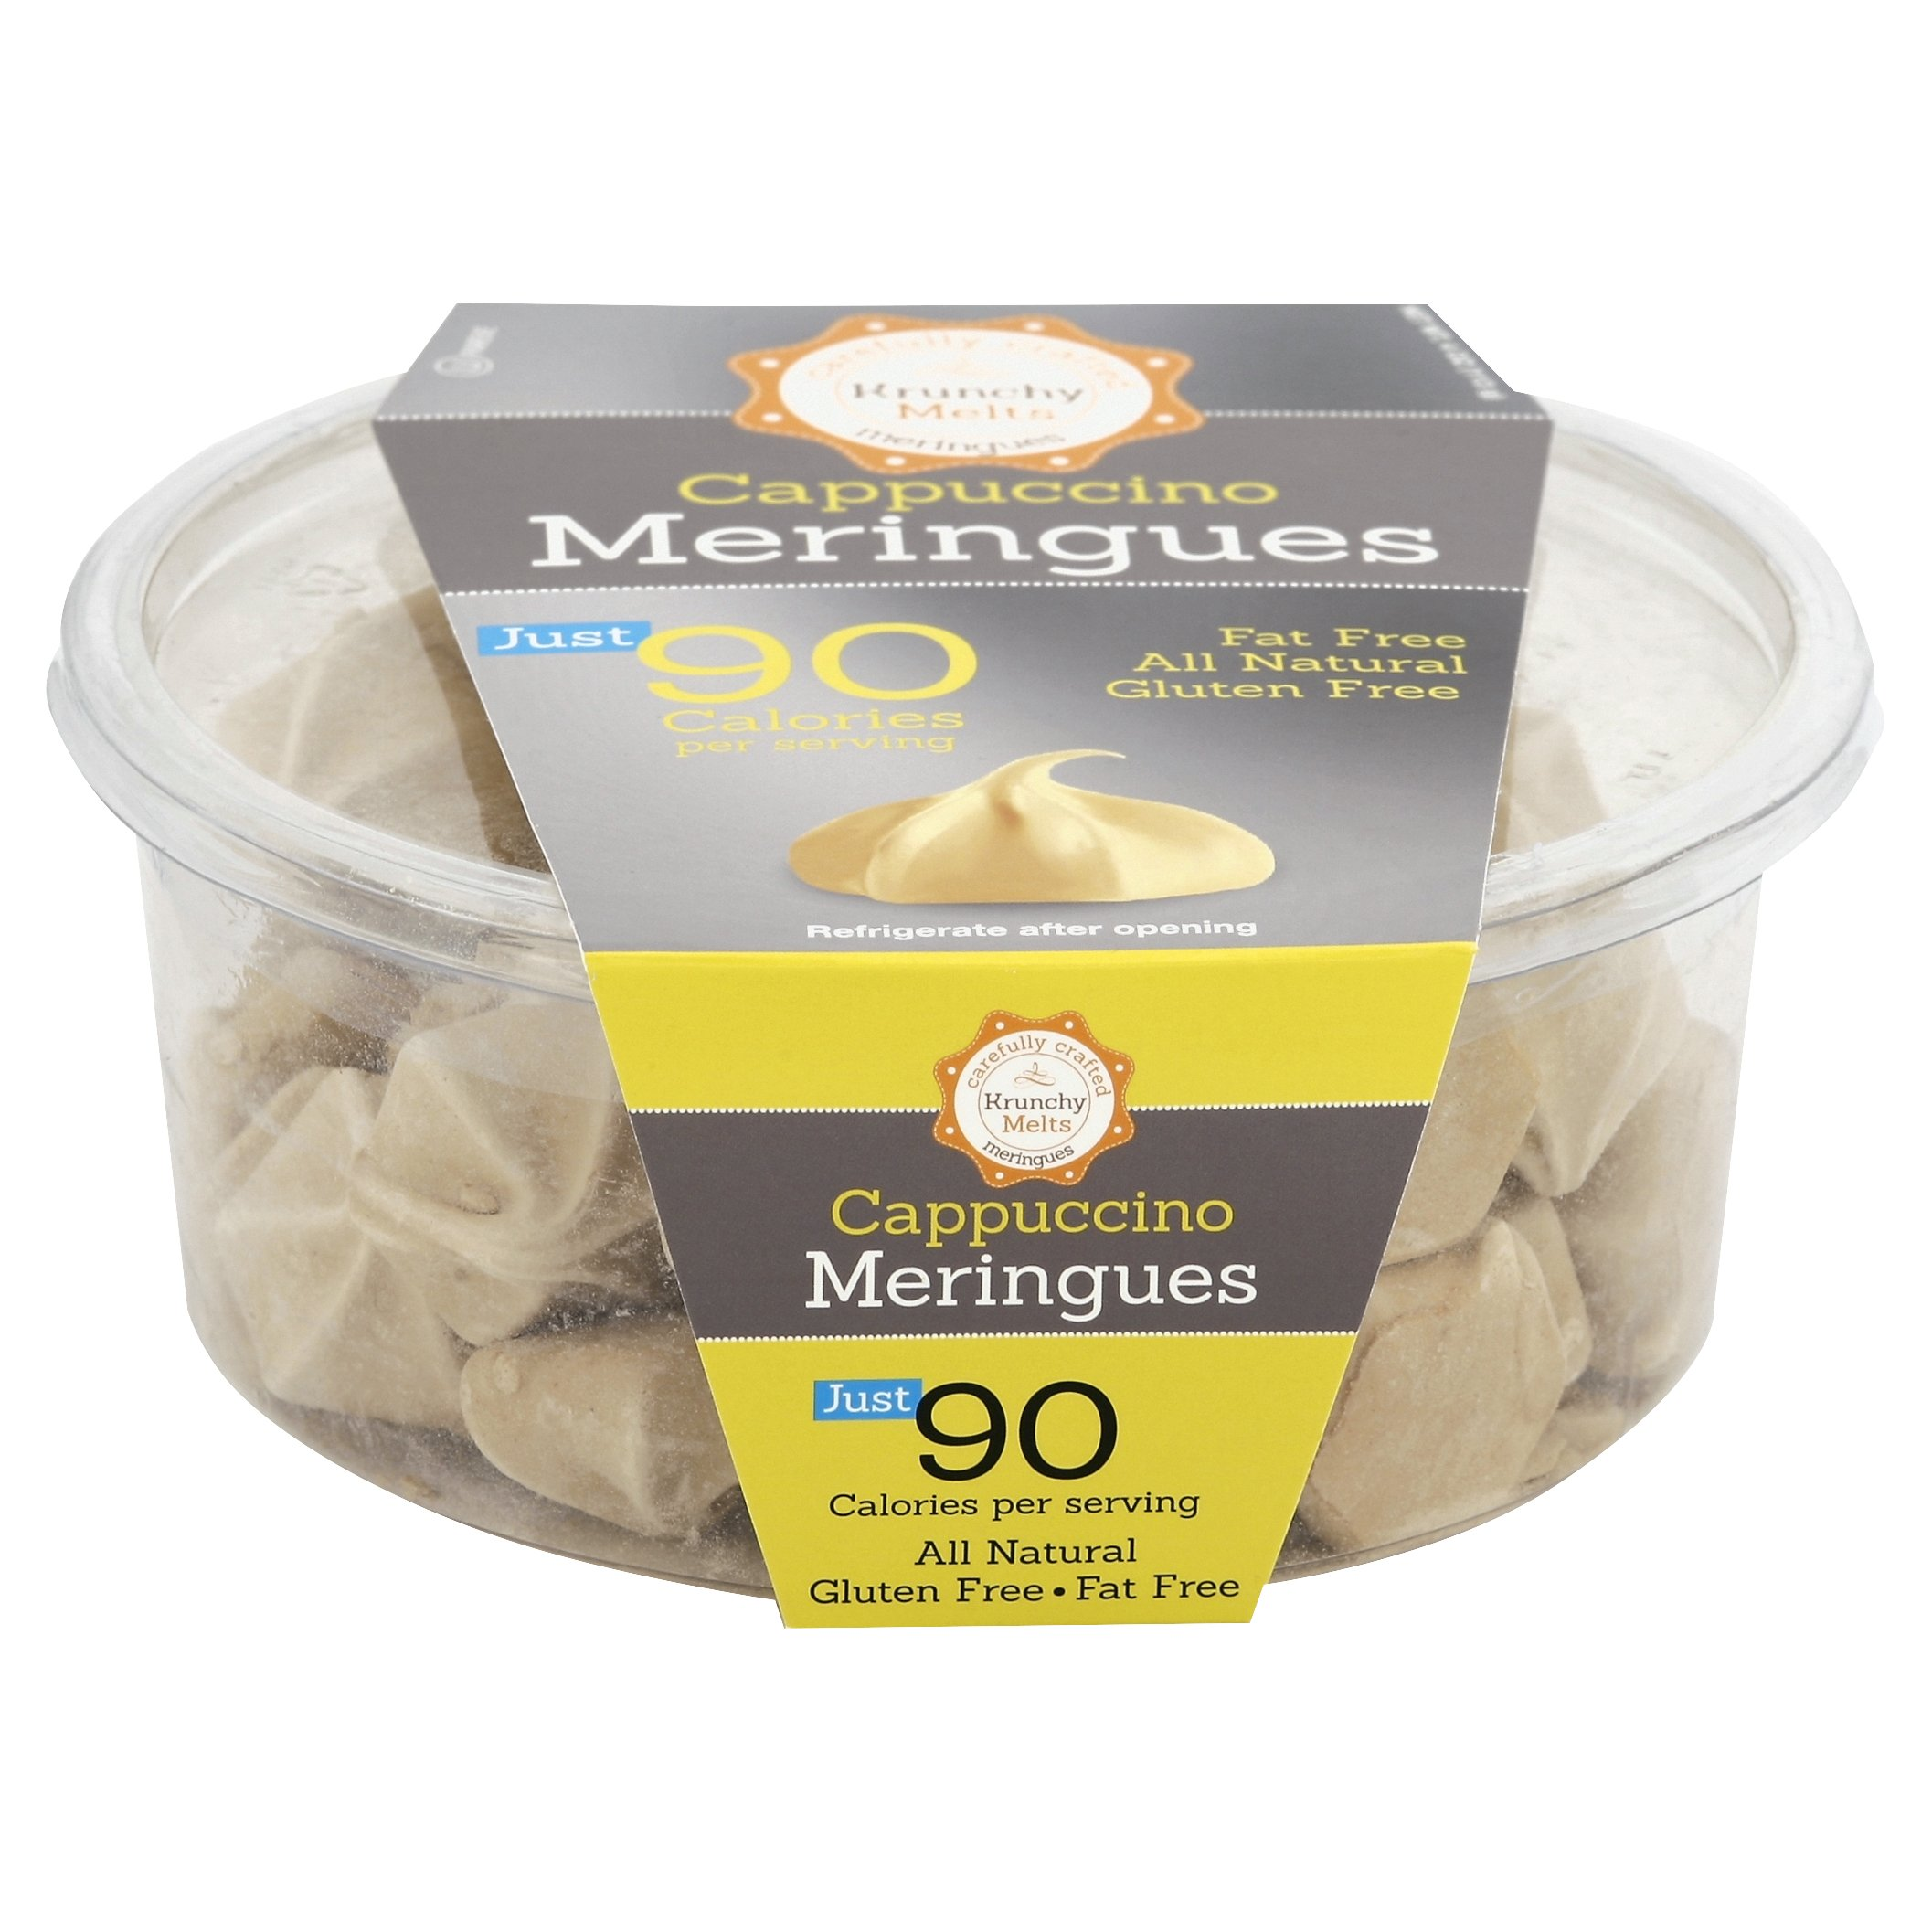 Krunchy Melts Meringue Tub Cappuccino by Krunchy Melts